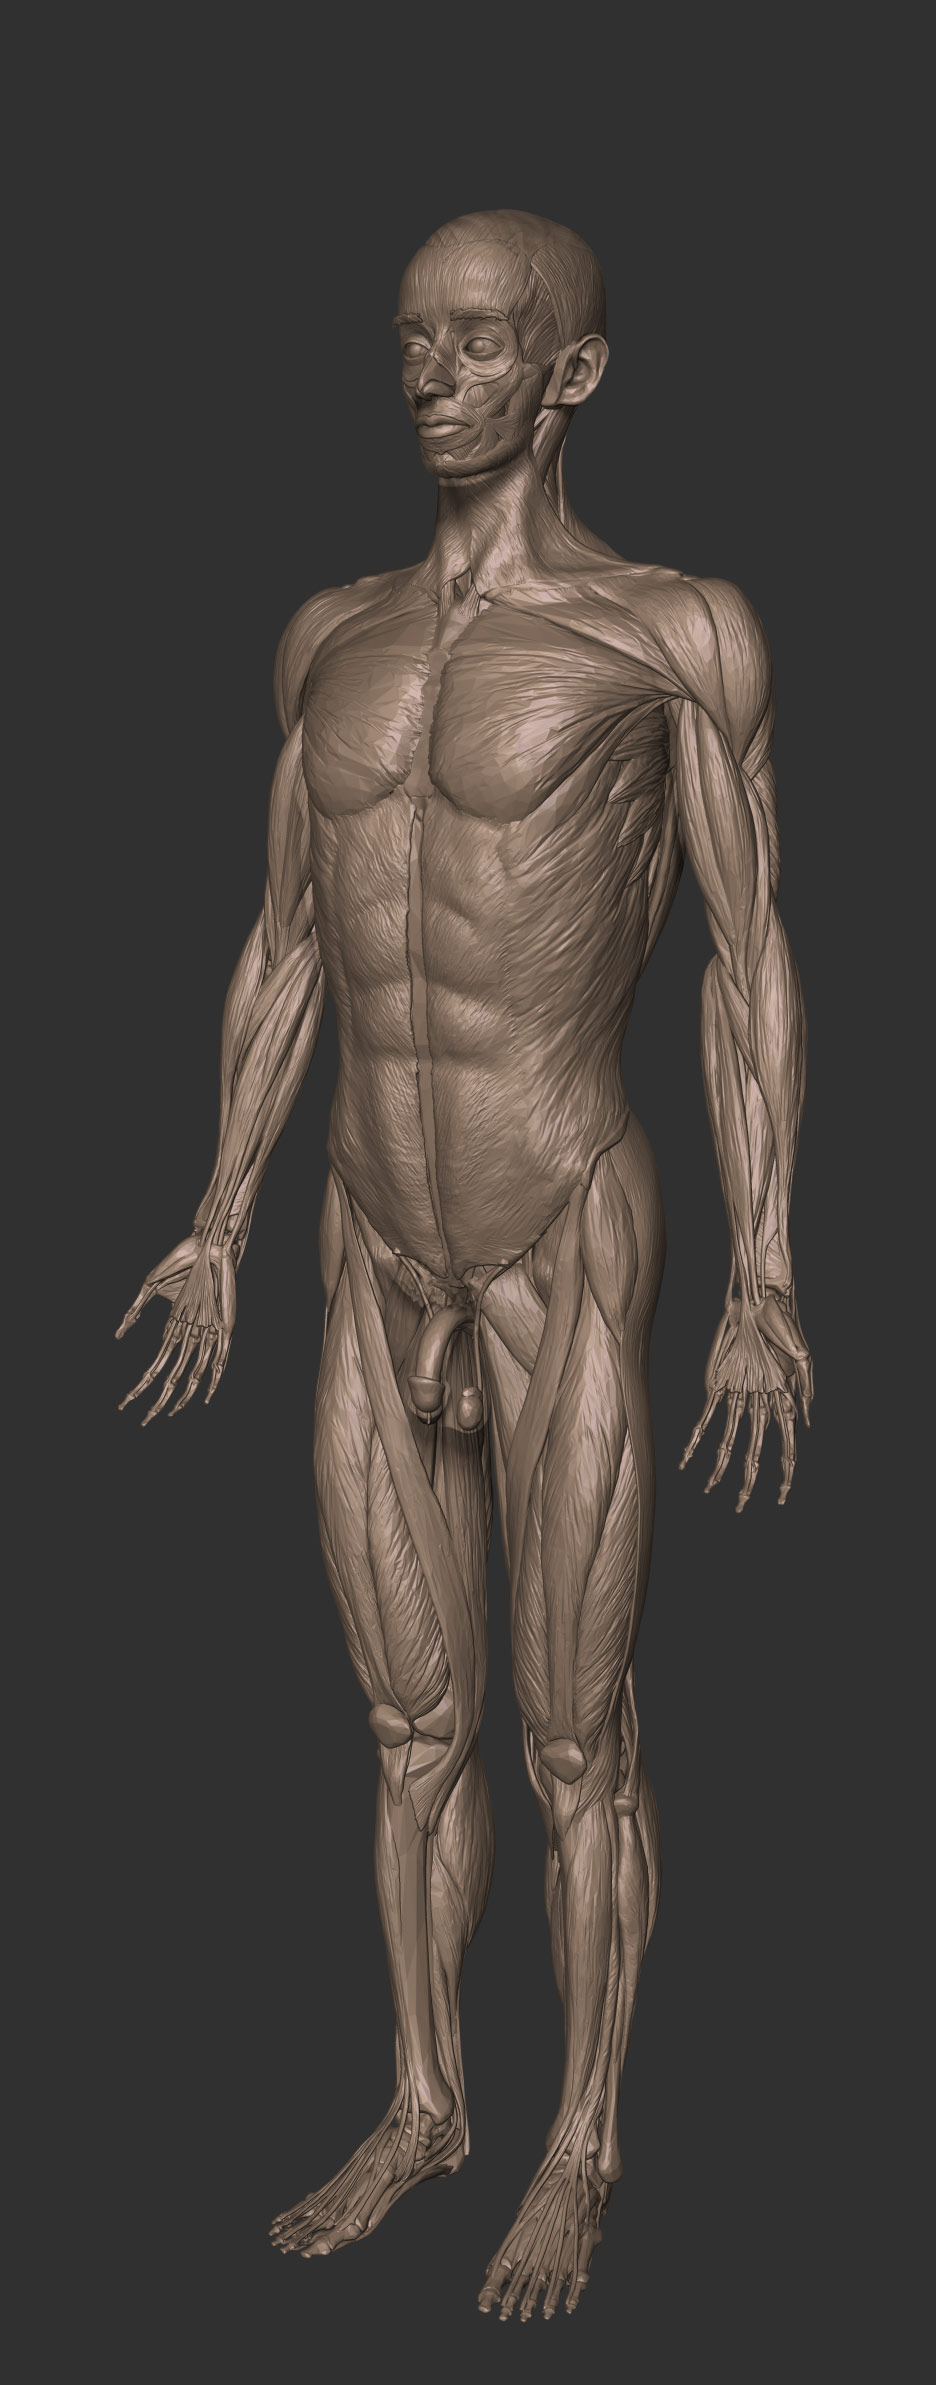 Full anatomy model free download